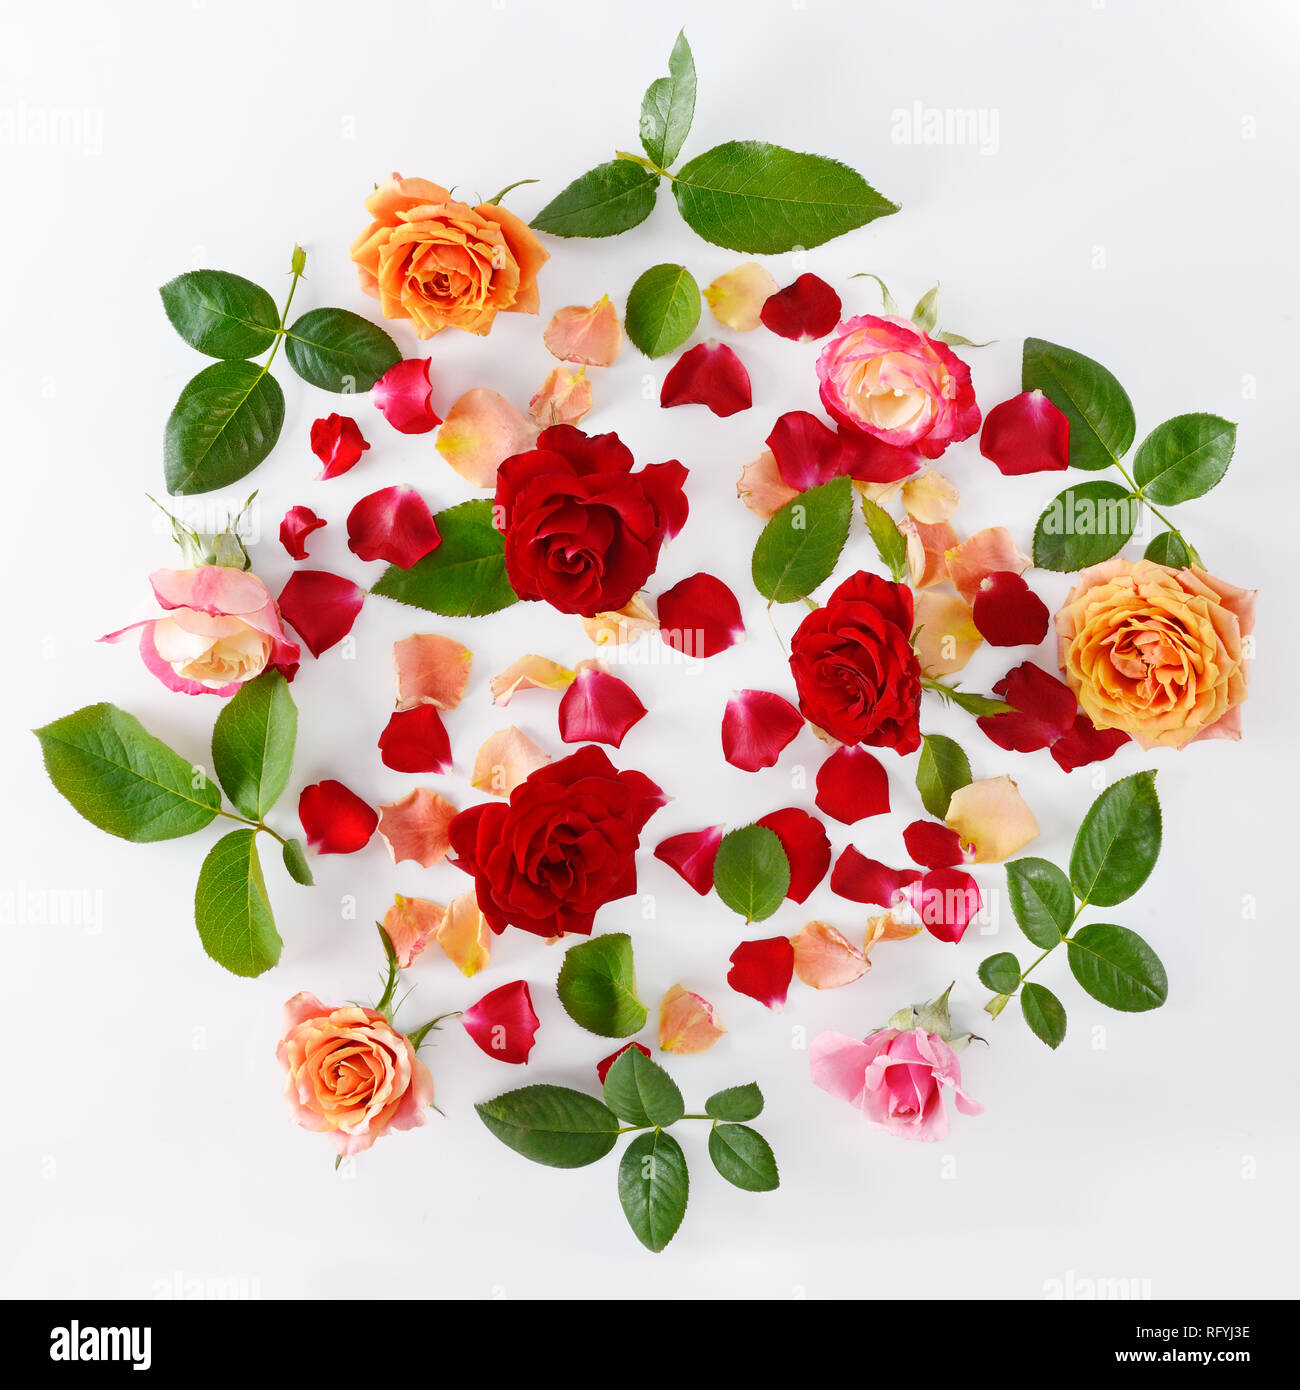 Pink and red roses isolated on white background. Flat lay, top view. Stock Photo